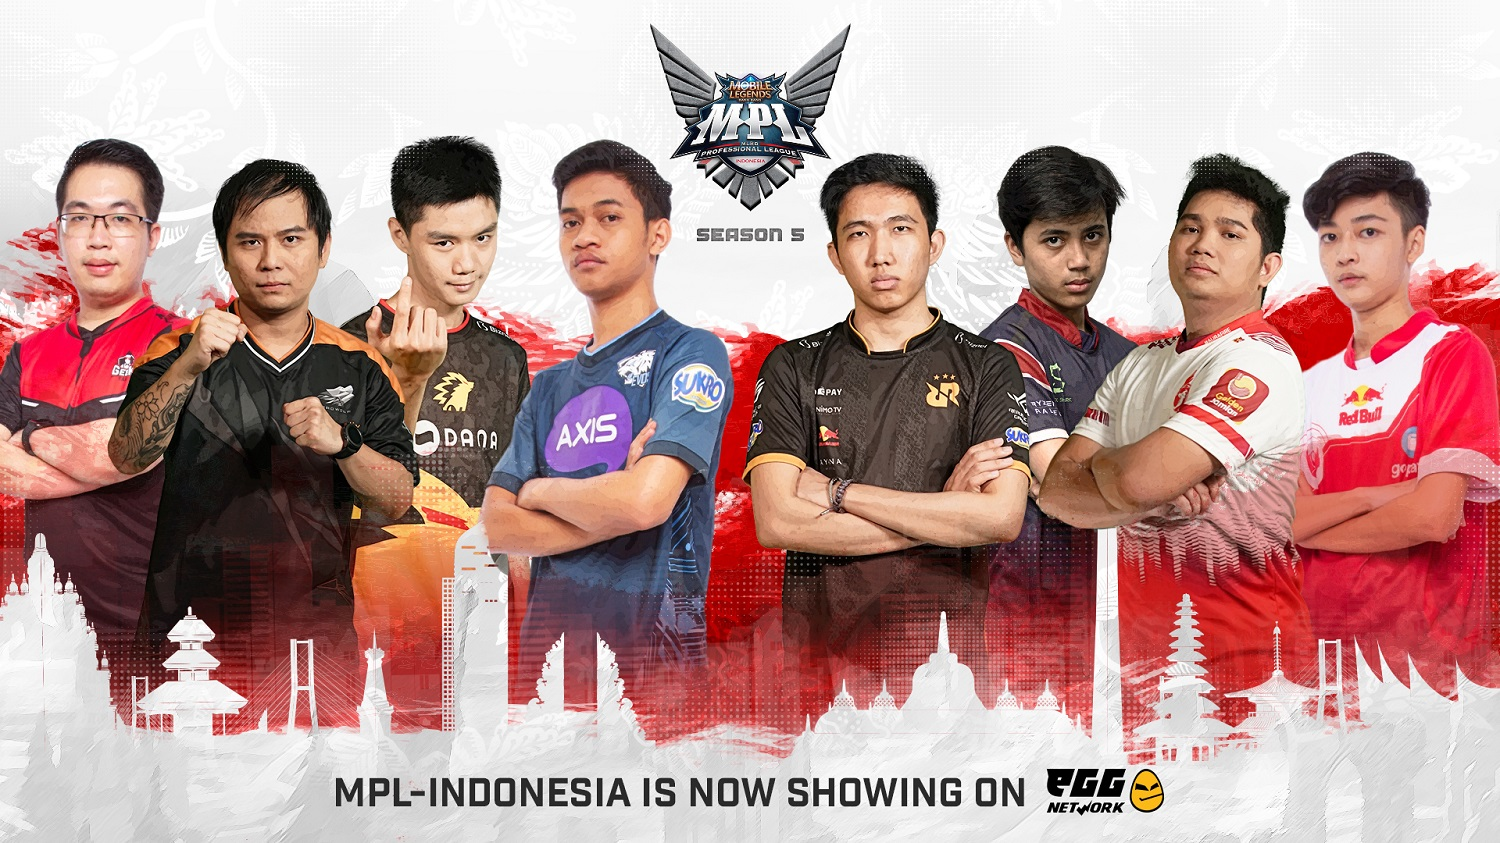 Malaysian Fans Can Catch the MLBB Professional League Indonesia Season 5 LIVE on TV